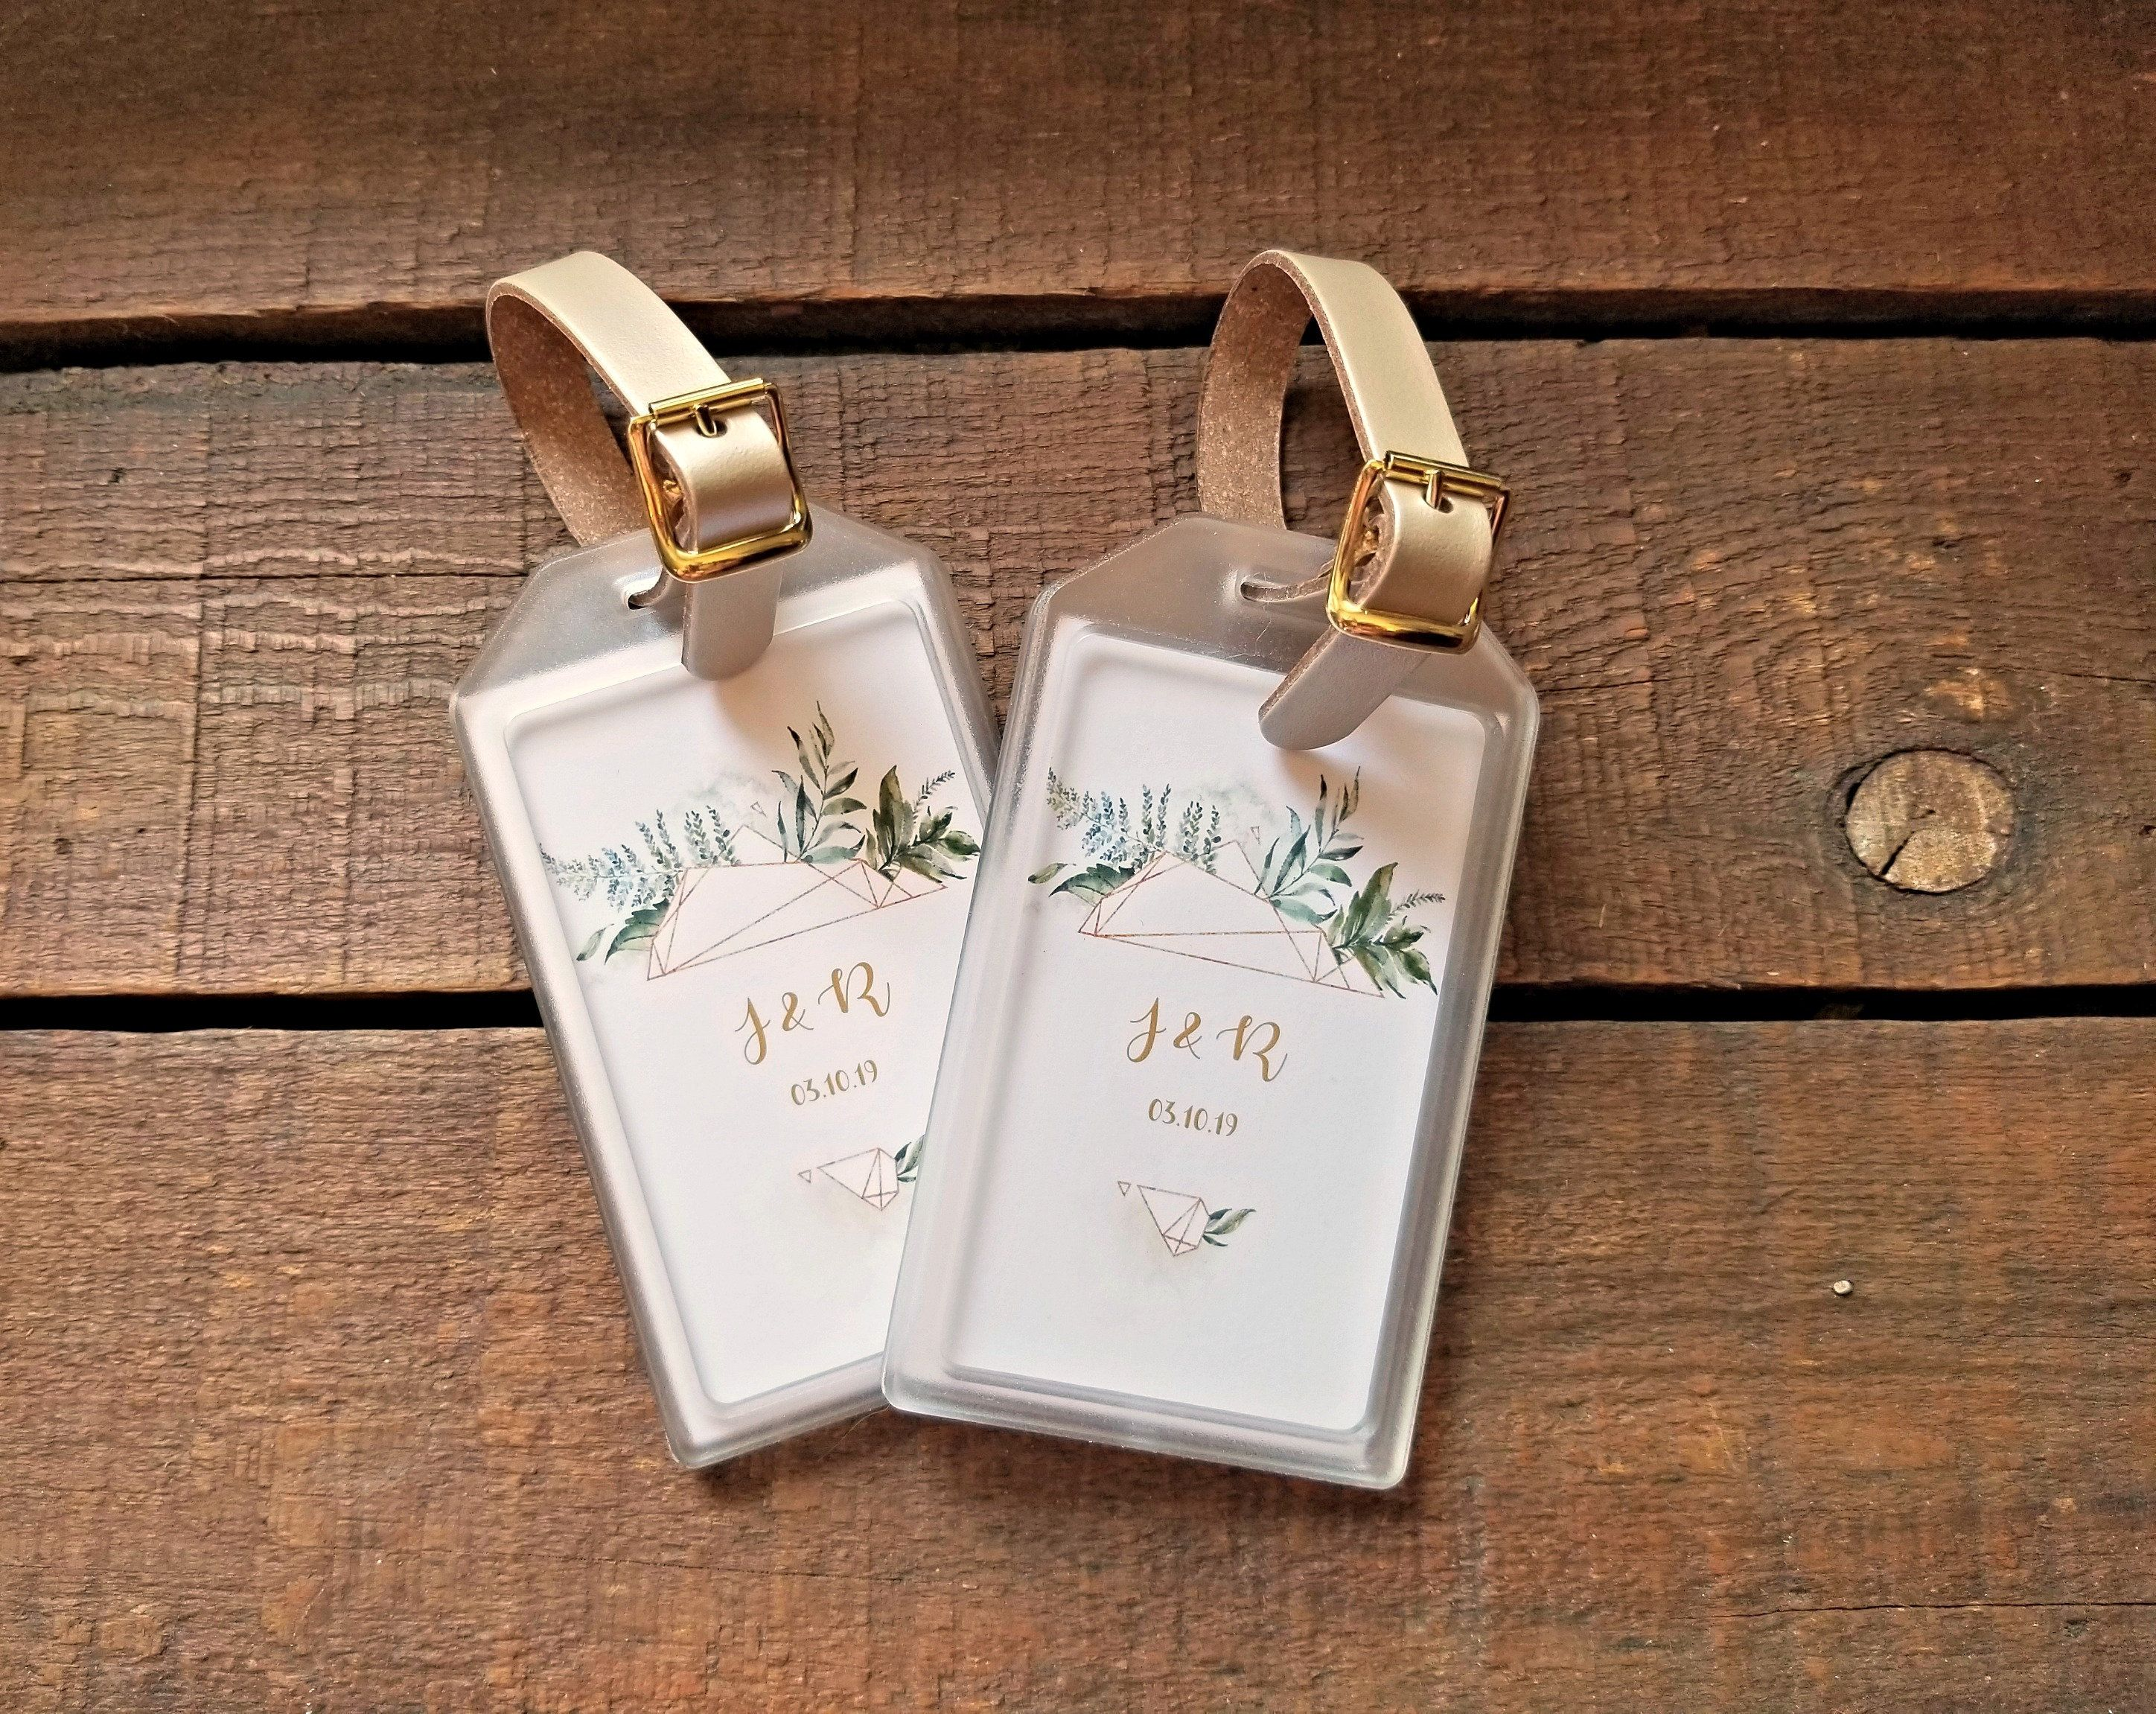 bridal shower luggage tag favors baby shower luggage tag favors destination wedding favors destination wedding welcome bags by mailmansdaughter on etsy